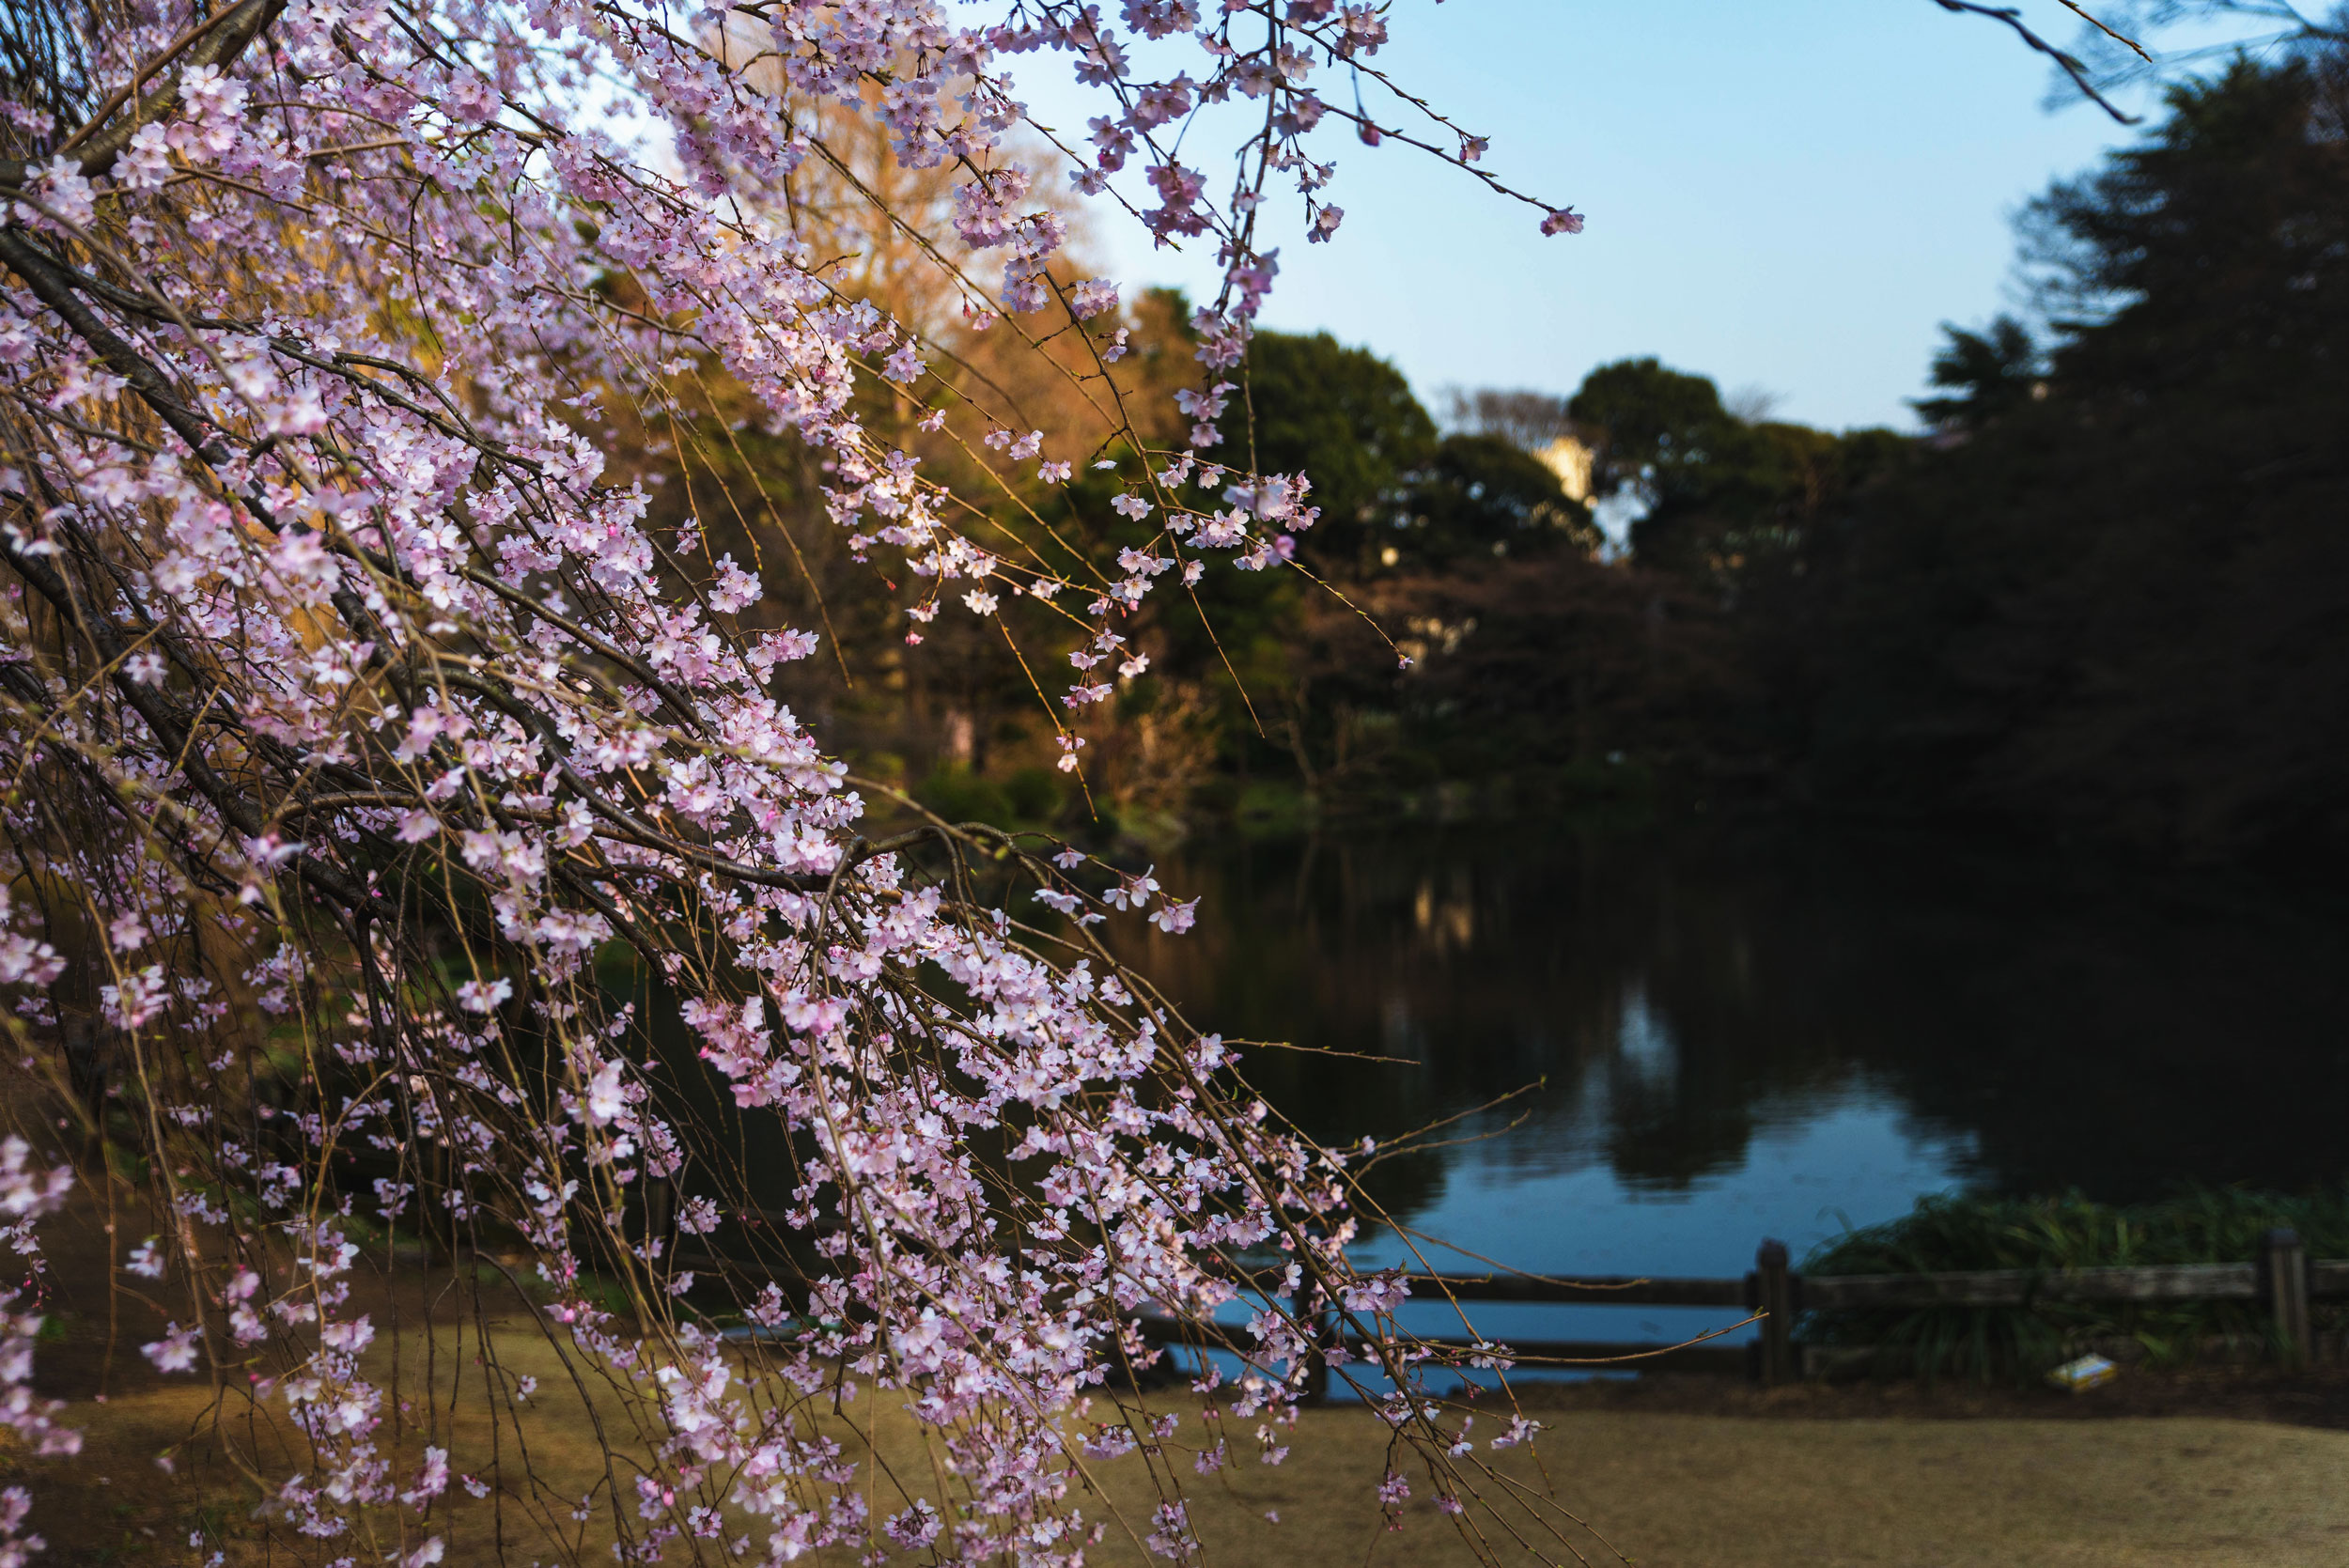 Cherry blossoms hanging near a lake in Shinjuku Gyoen Park